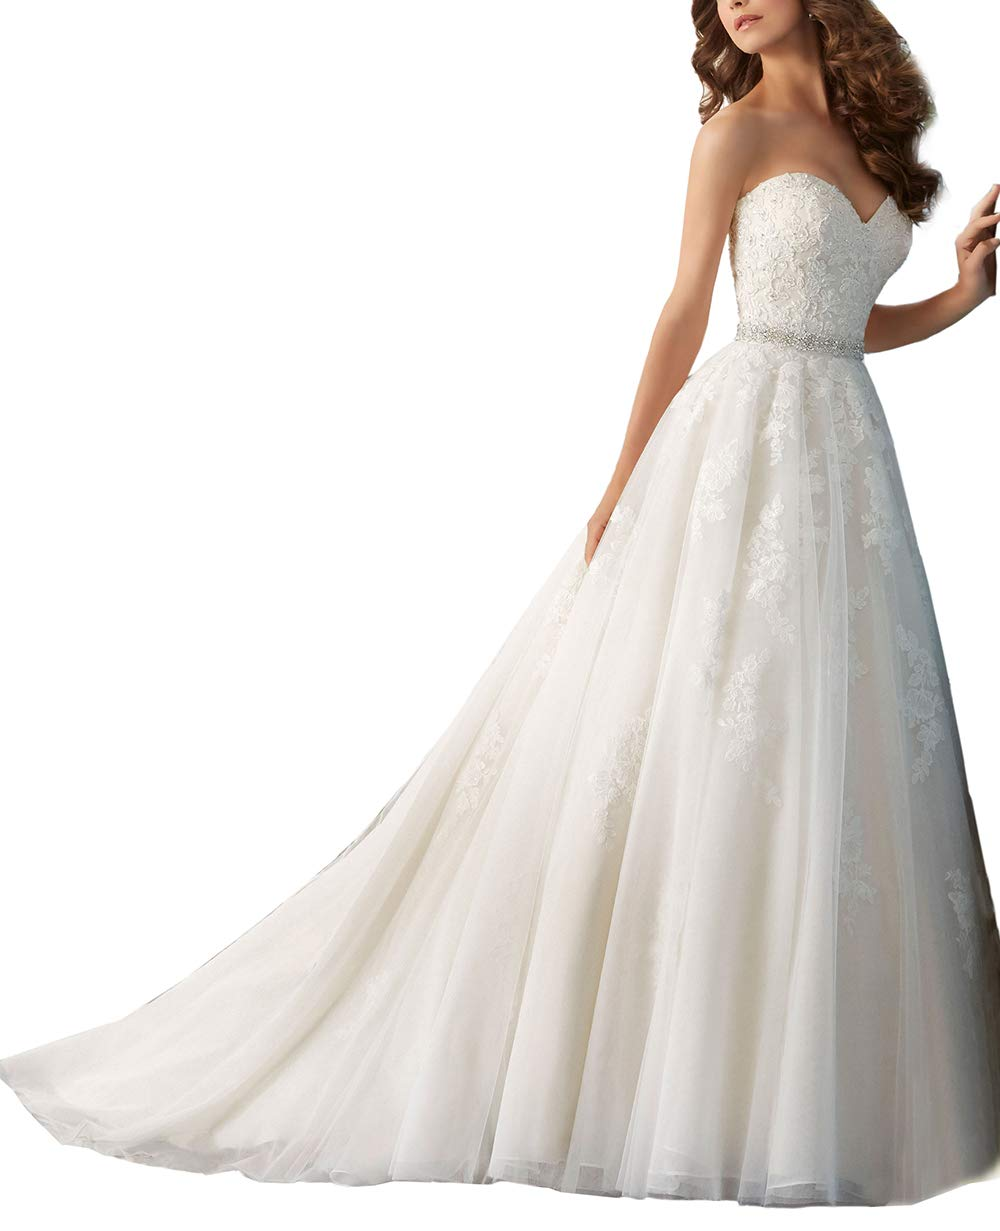 Nicefashion Sweetheart Beaded Lace A Line Wedding Dress Detachable Bowknot product image